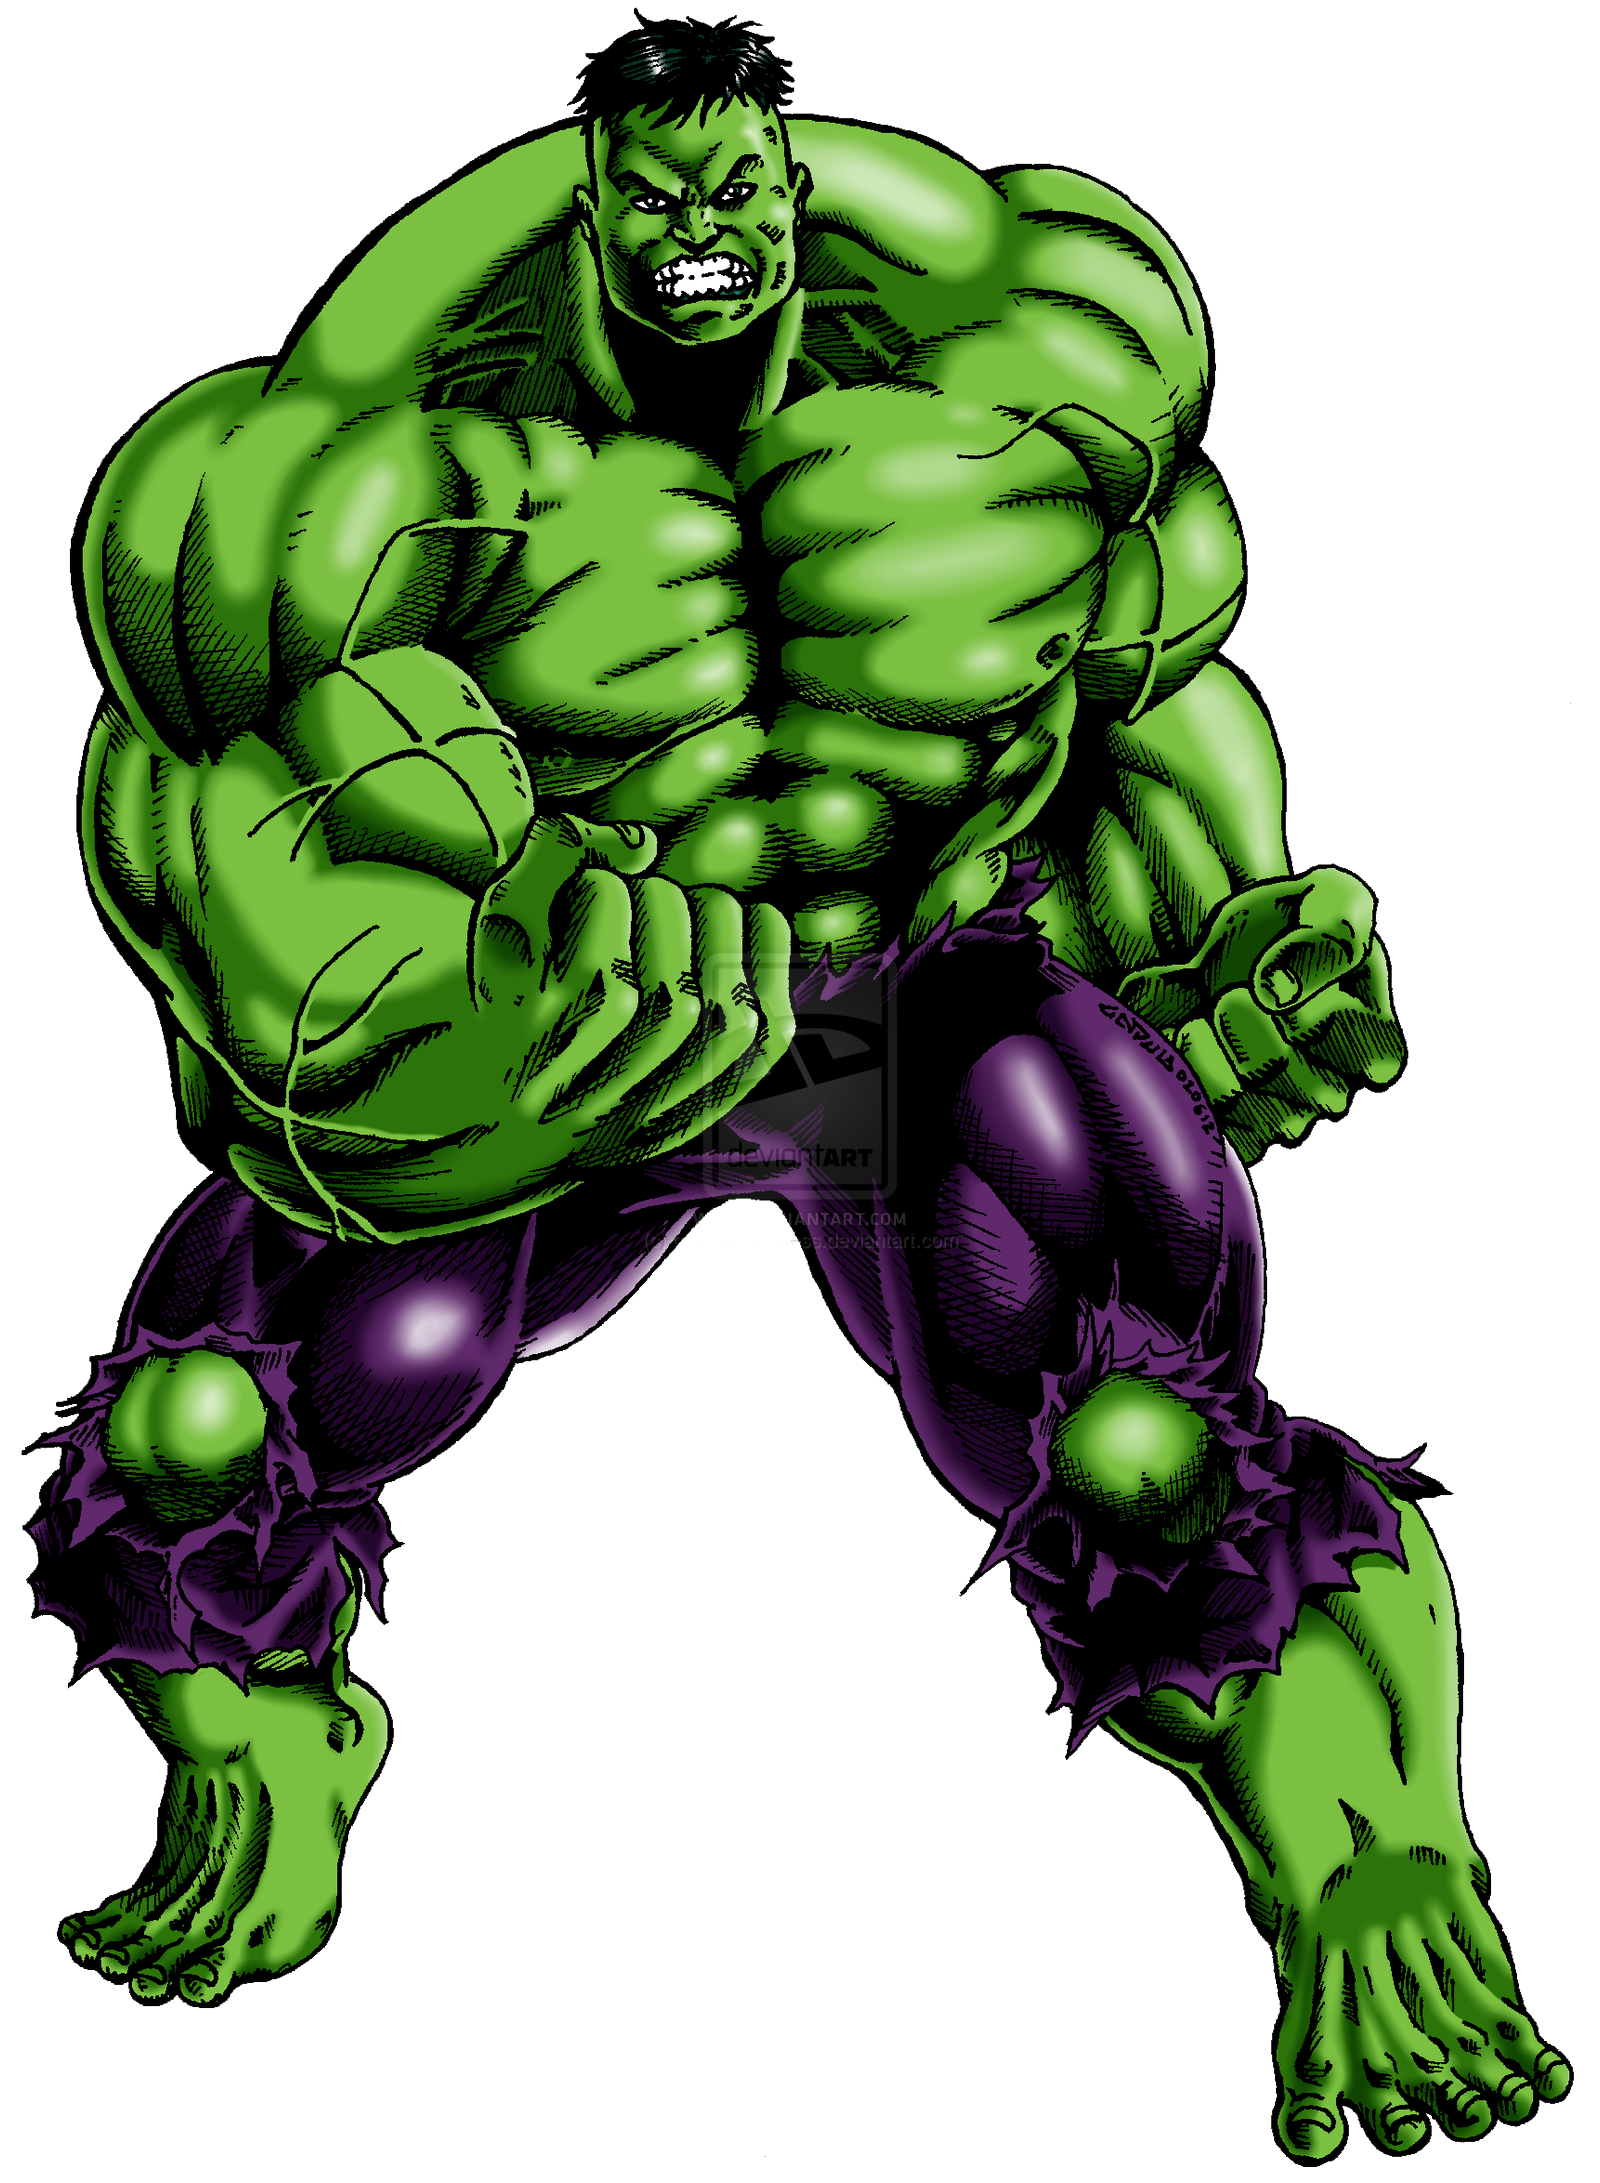 Hulk png. Picture mart